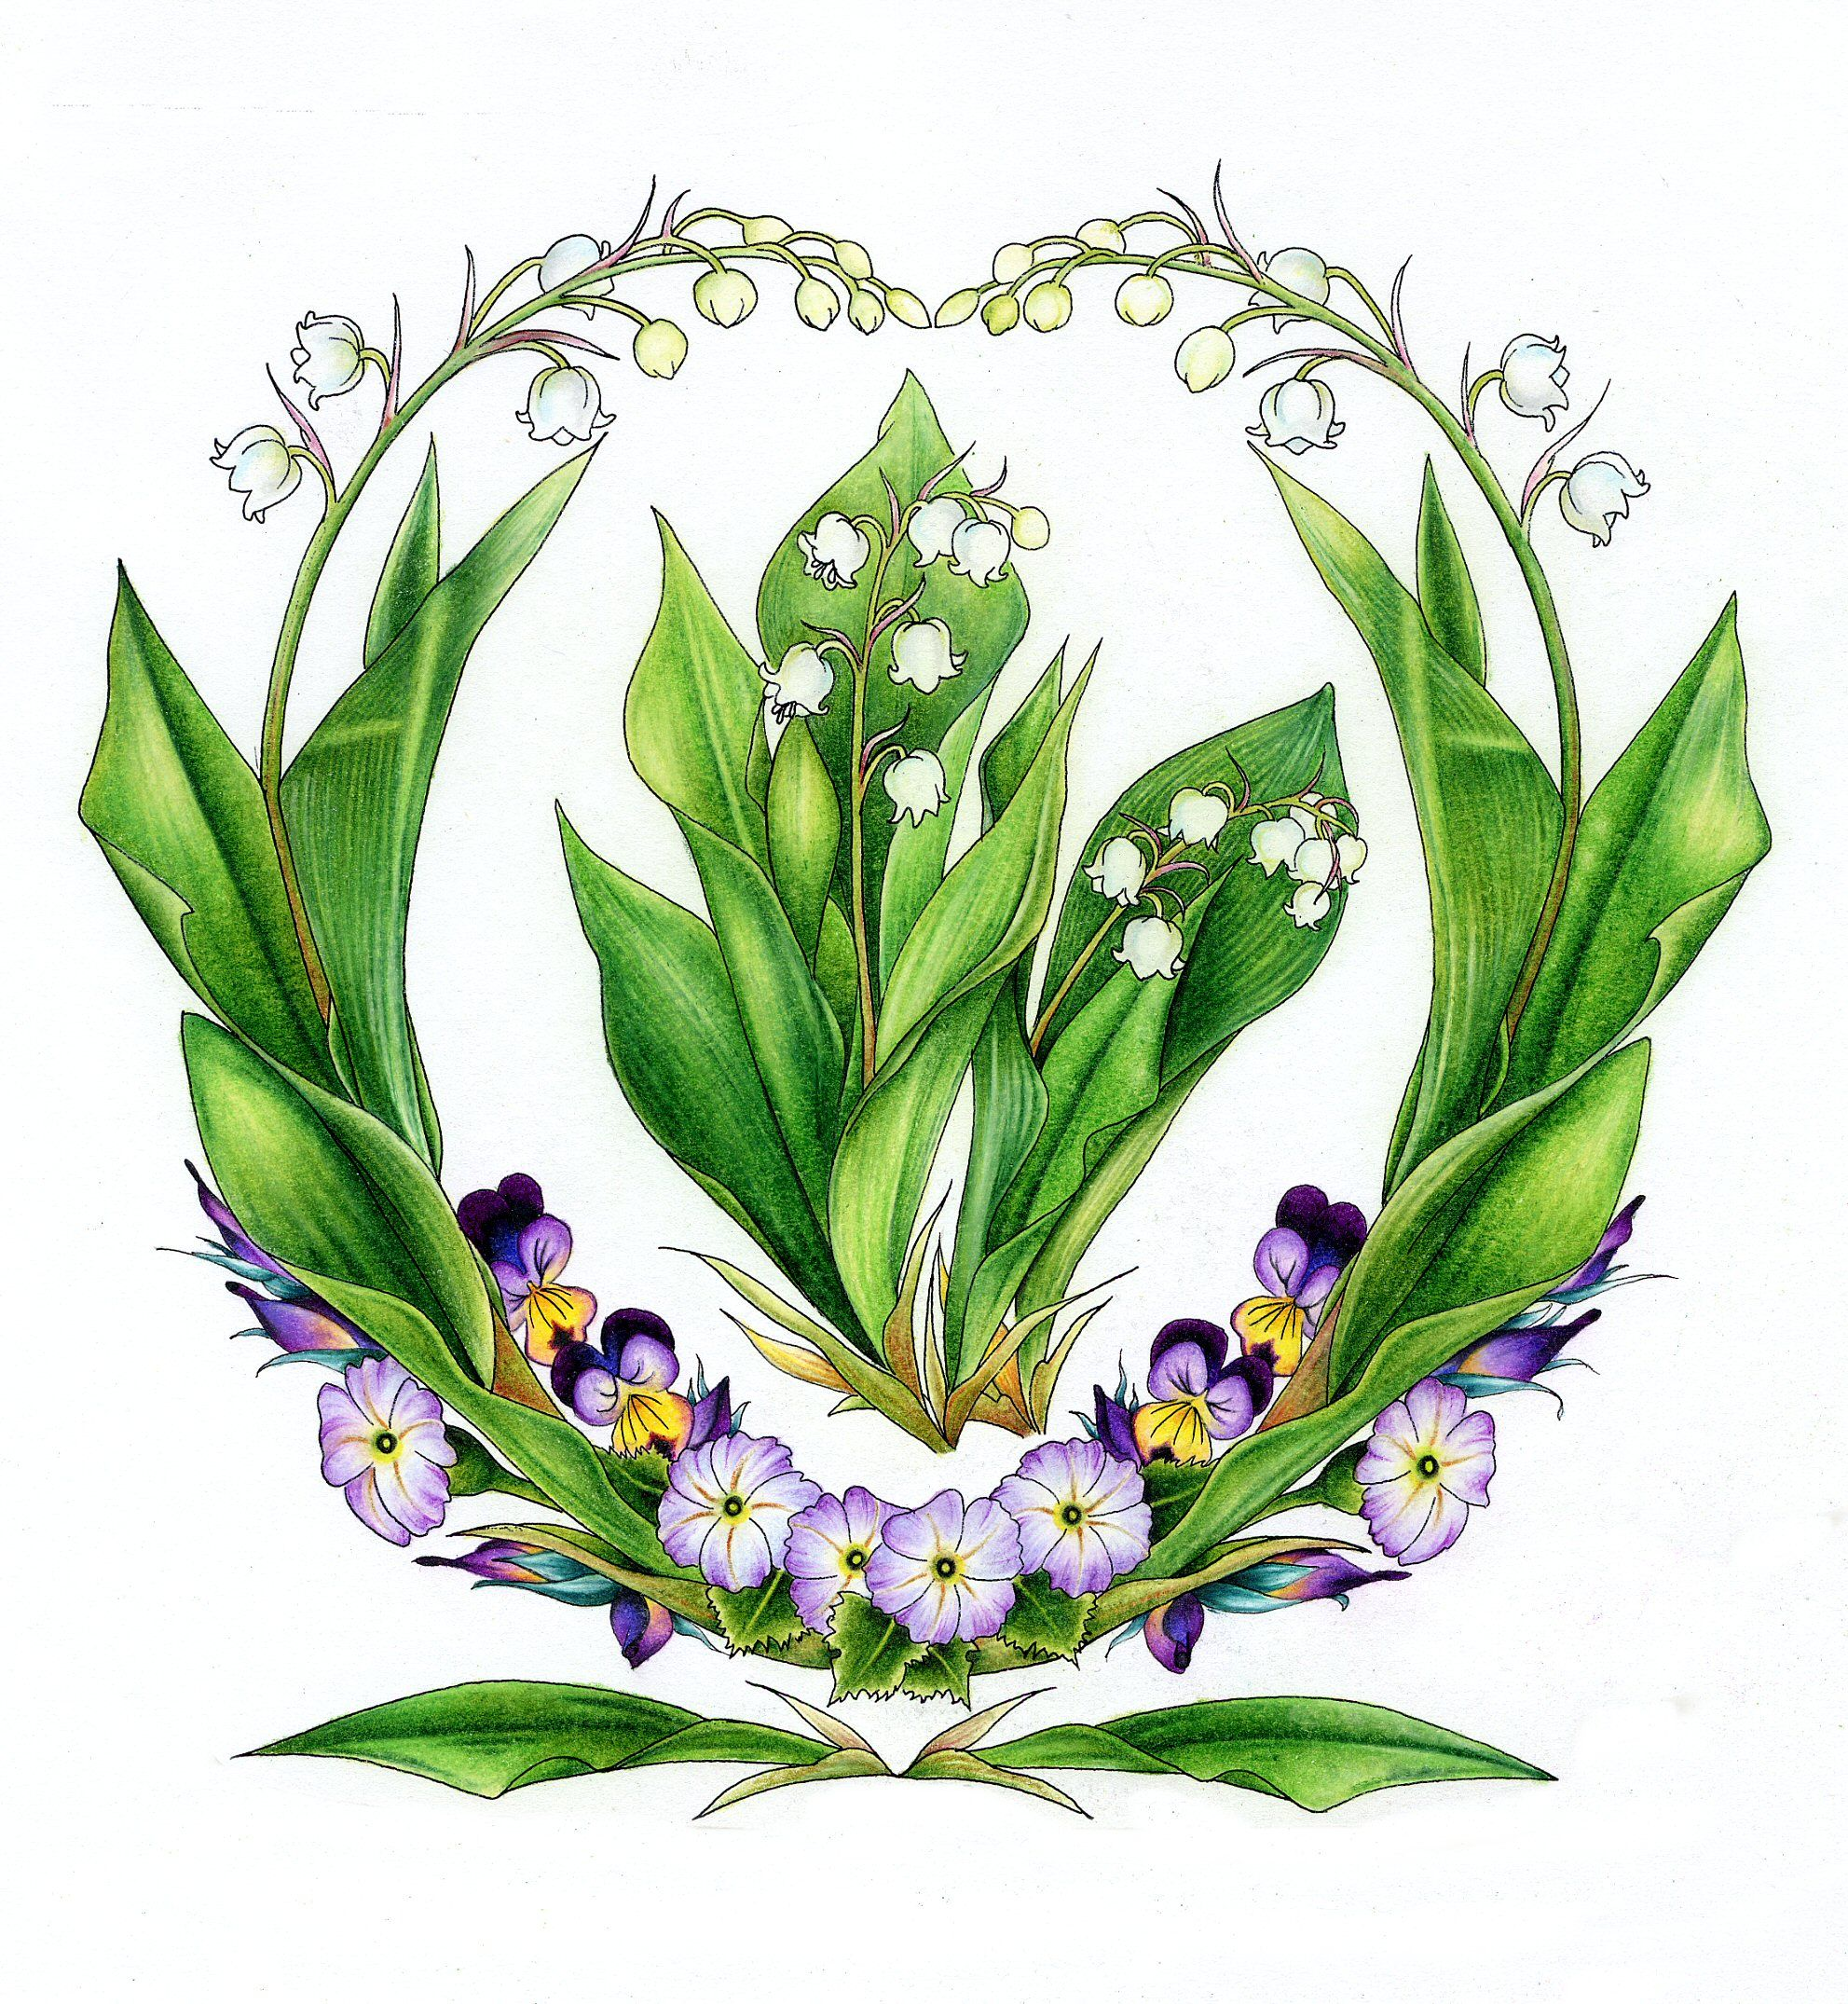 Lily Of The Valley Symbolism Lily Of The Valley The Meaning Of